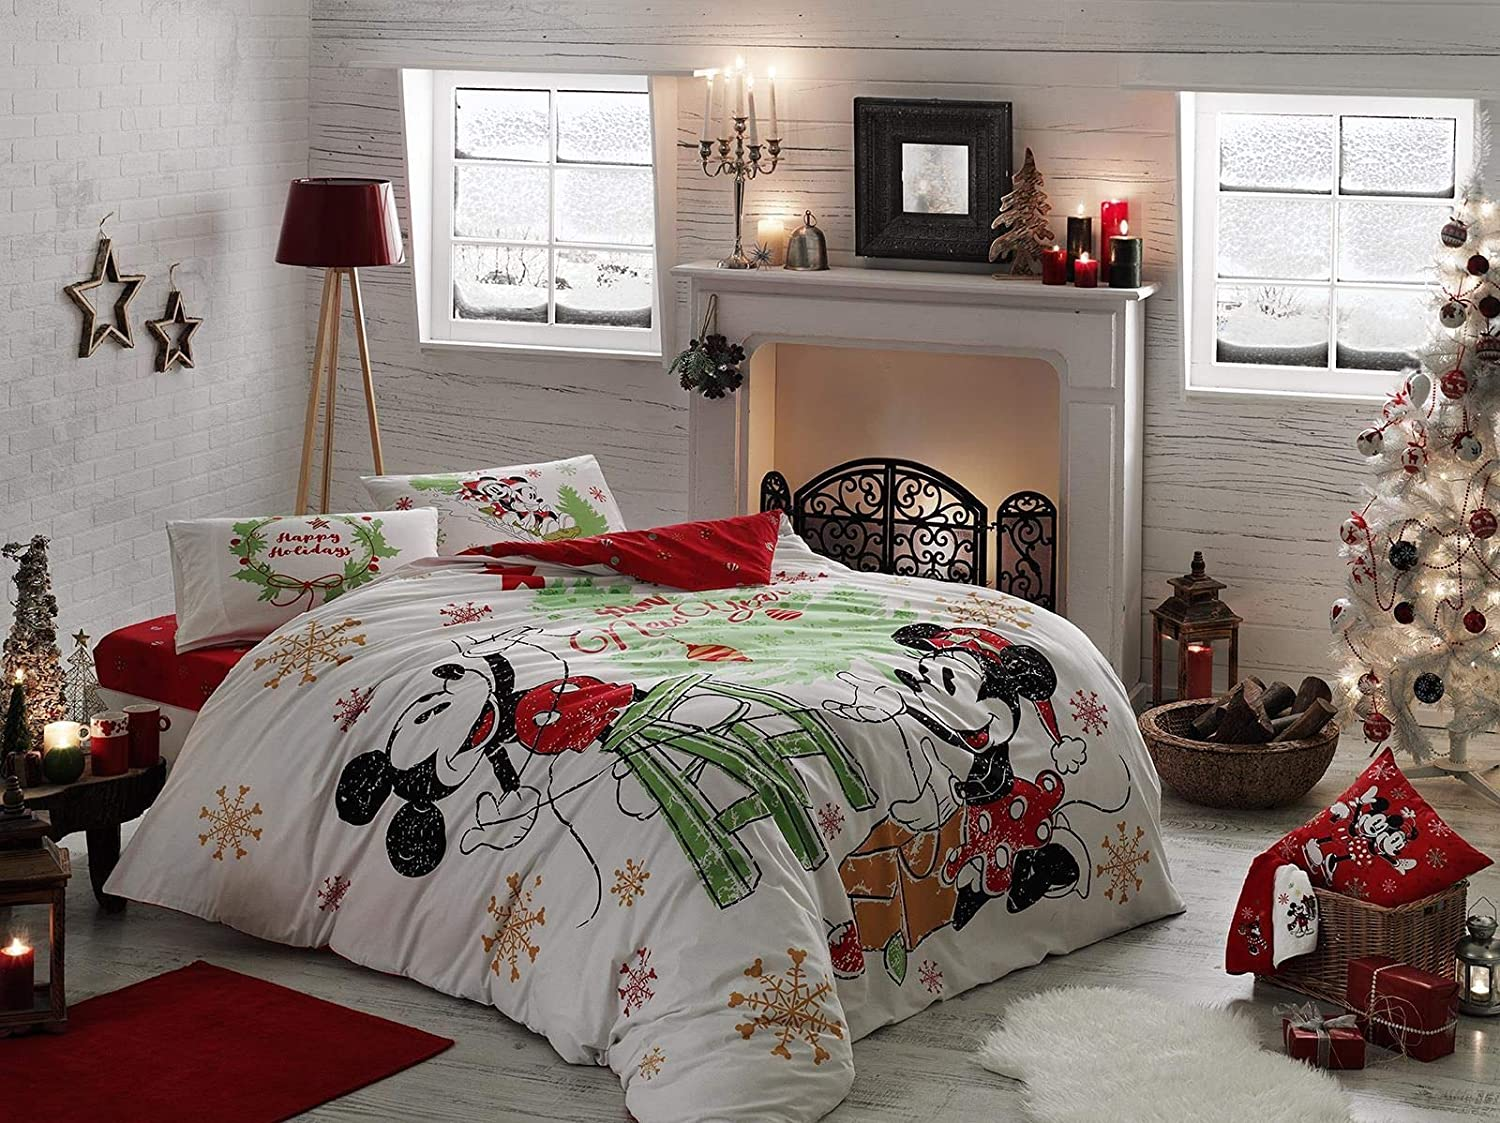 TAC 100% Cotton Double Queen Size Bedding Set Duvet Quilt Cover Set Comforter Cover Mickey Minnie Mouse Happy New Year